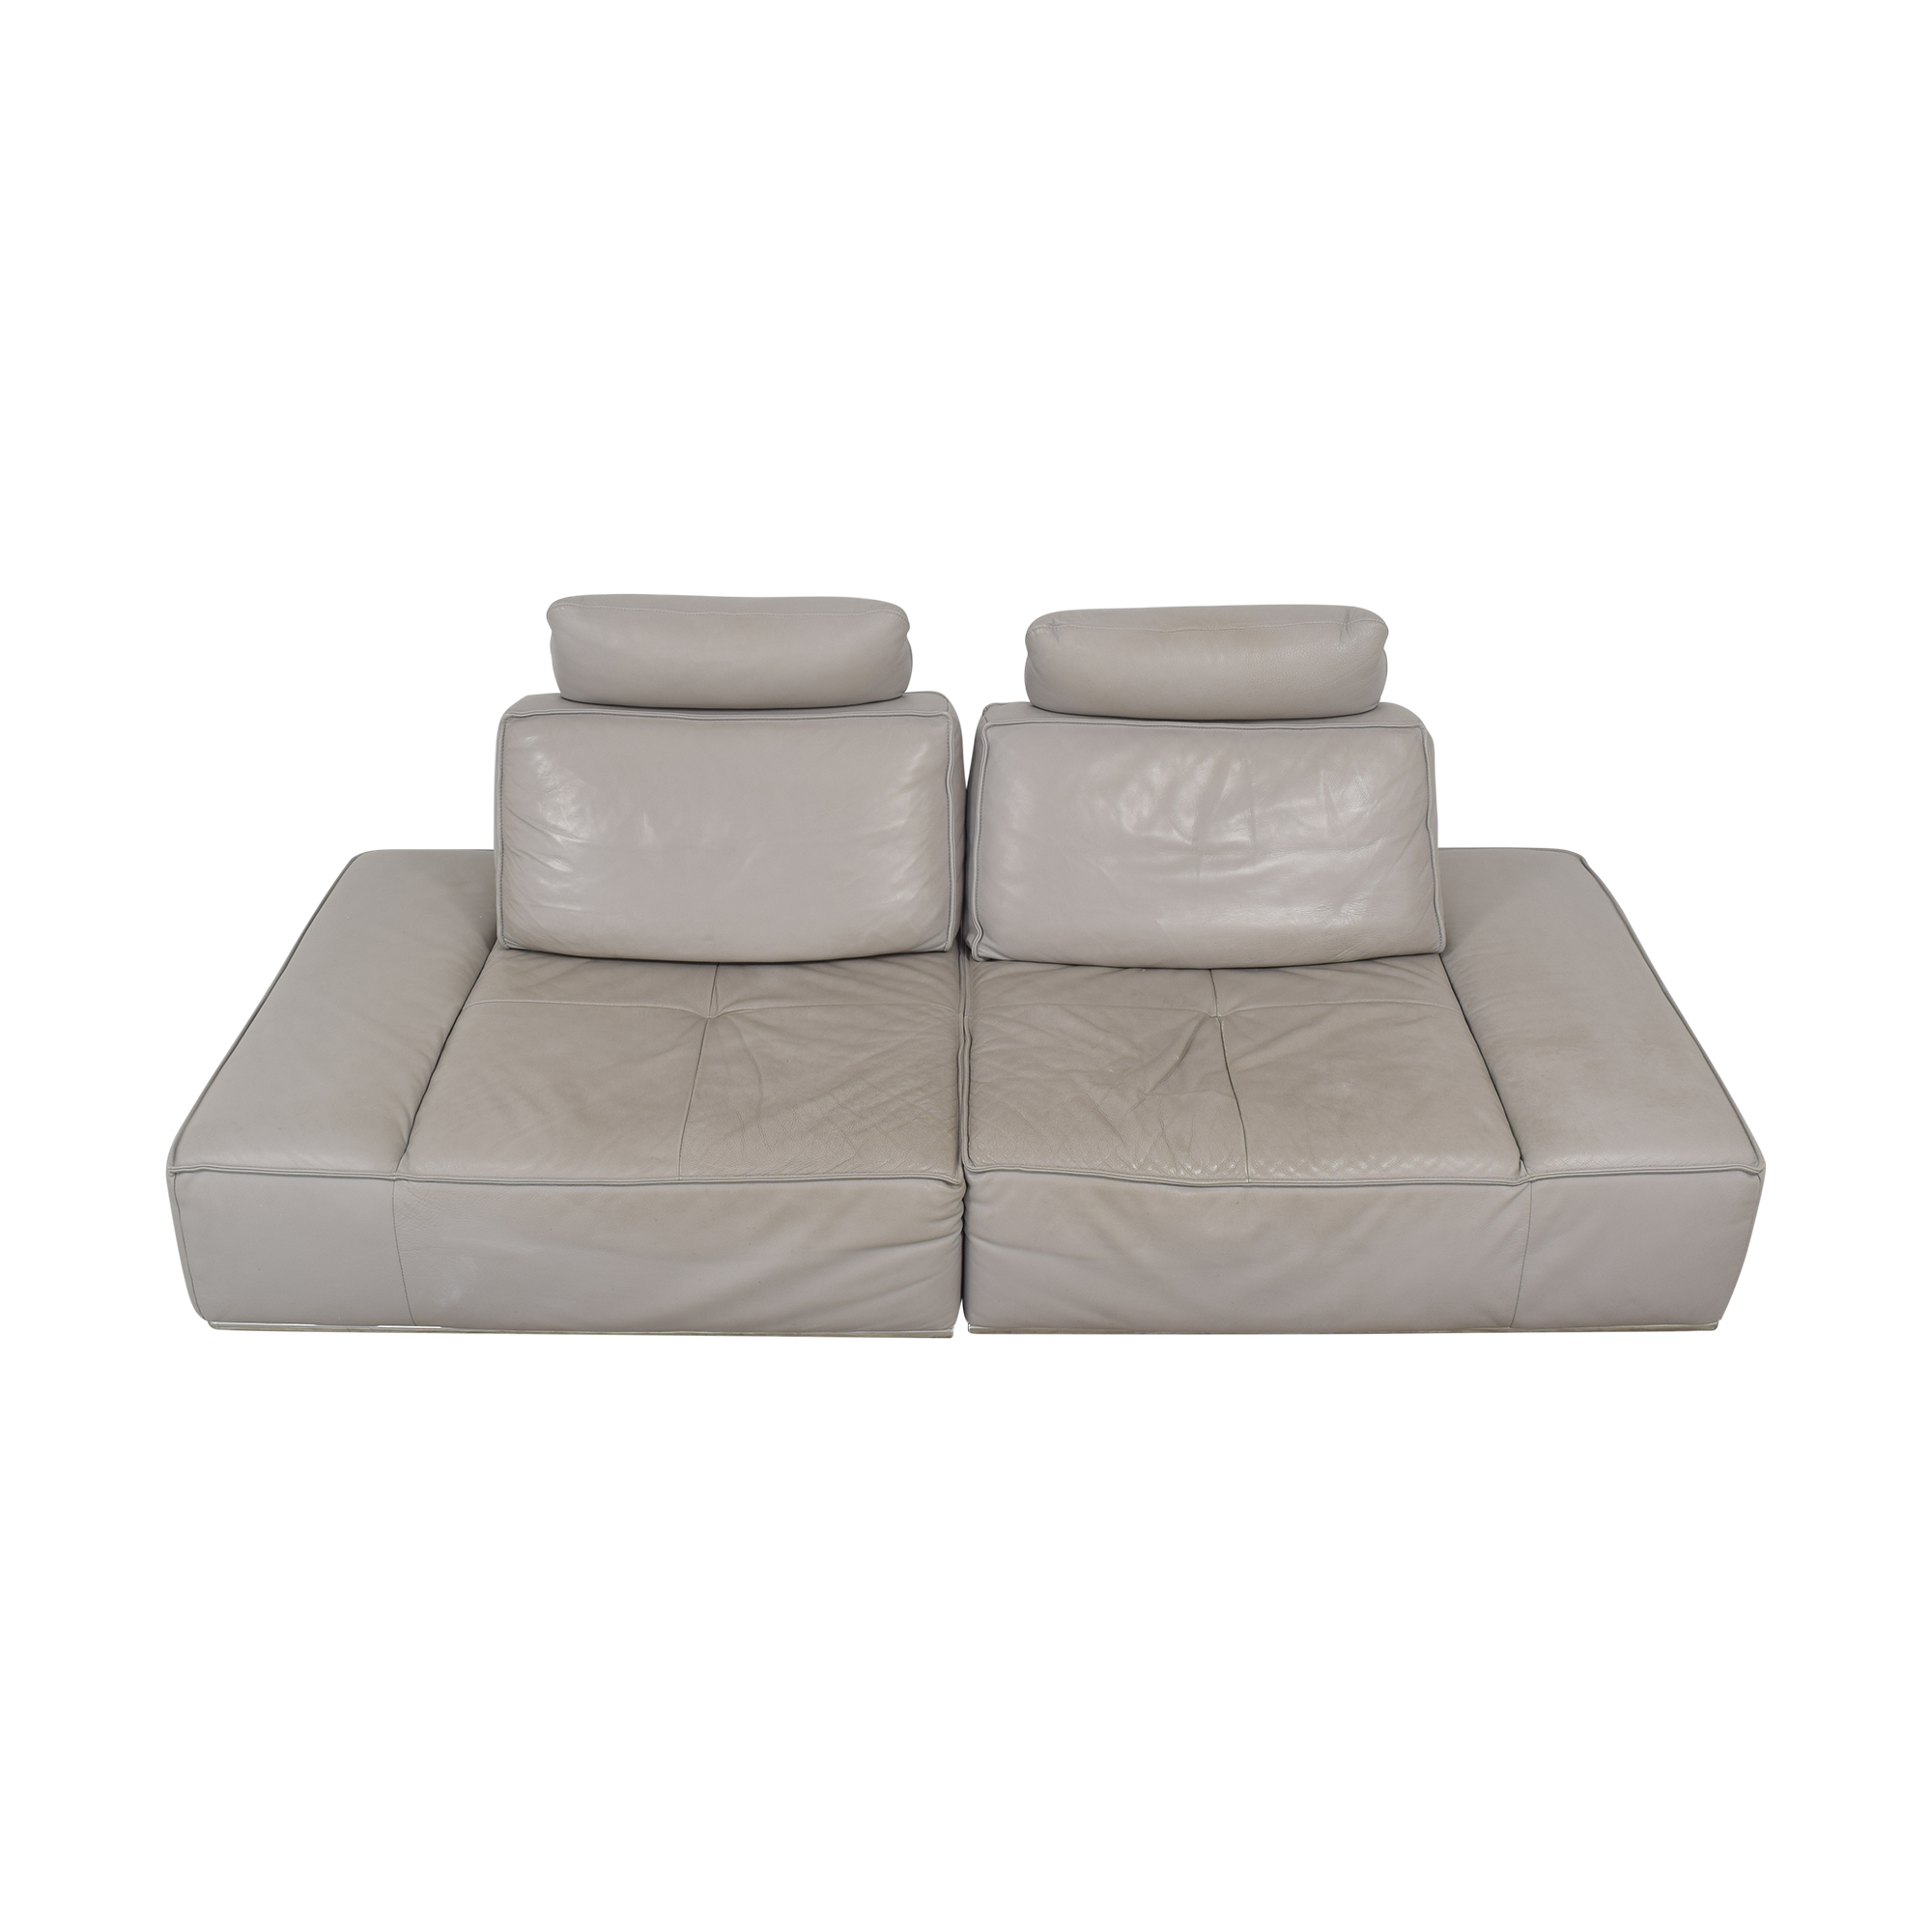 Sit Down New York Sit Down New York Convertible Sectional Sofa dimensions